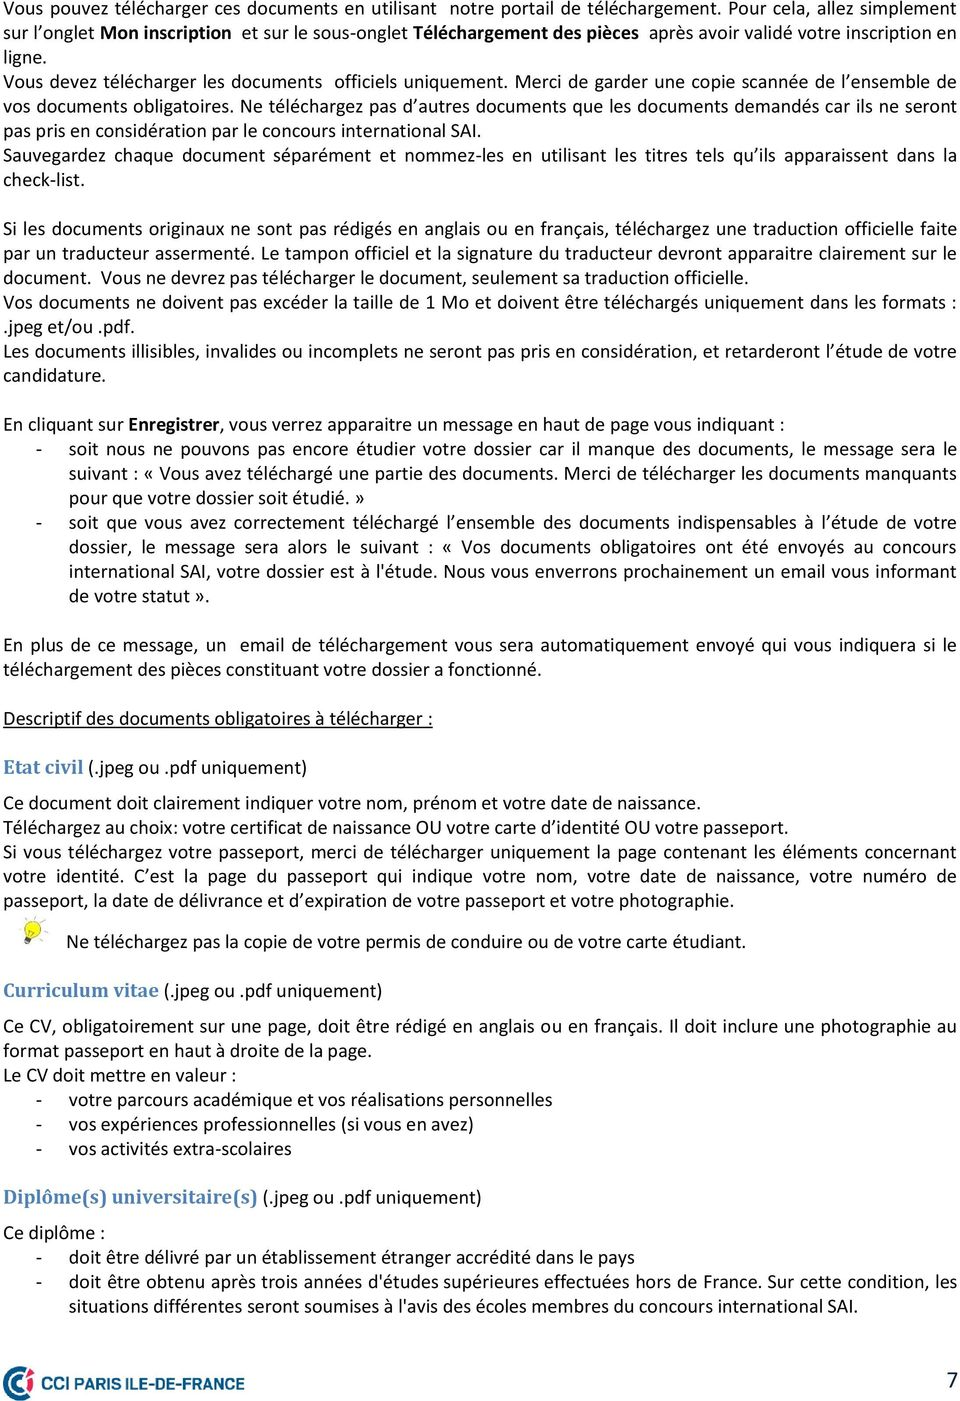 Vous devez télécharger les documents officiels uniquement. Merci de garder une copie scannée de l ensemble de vos documents obligatoires.